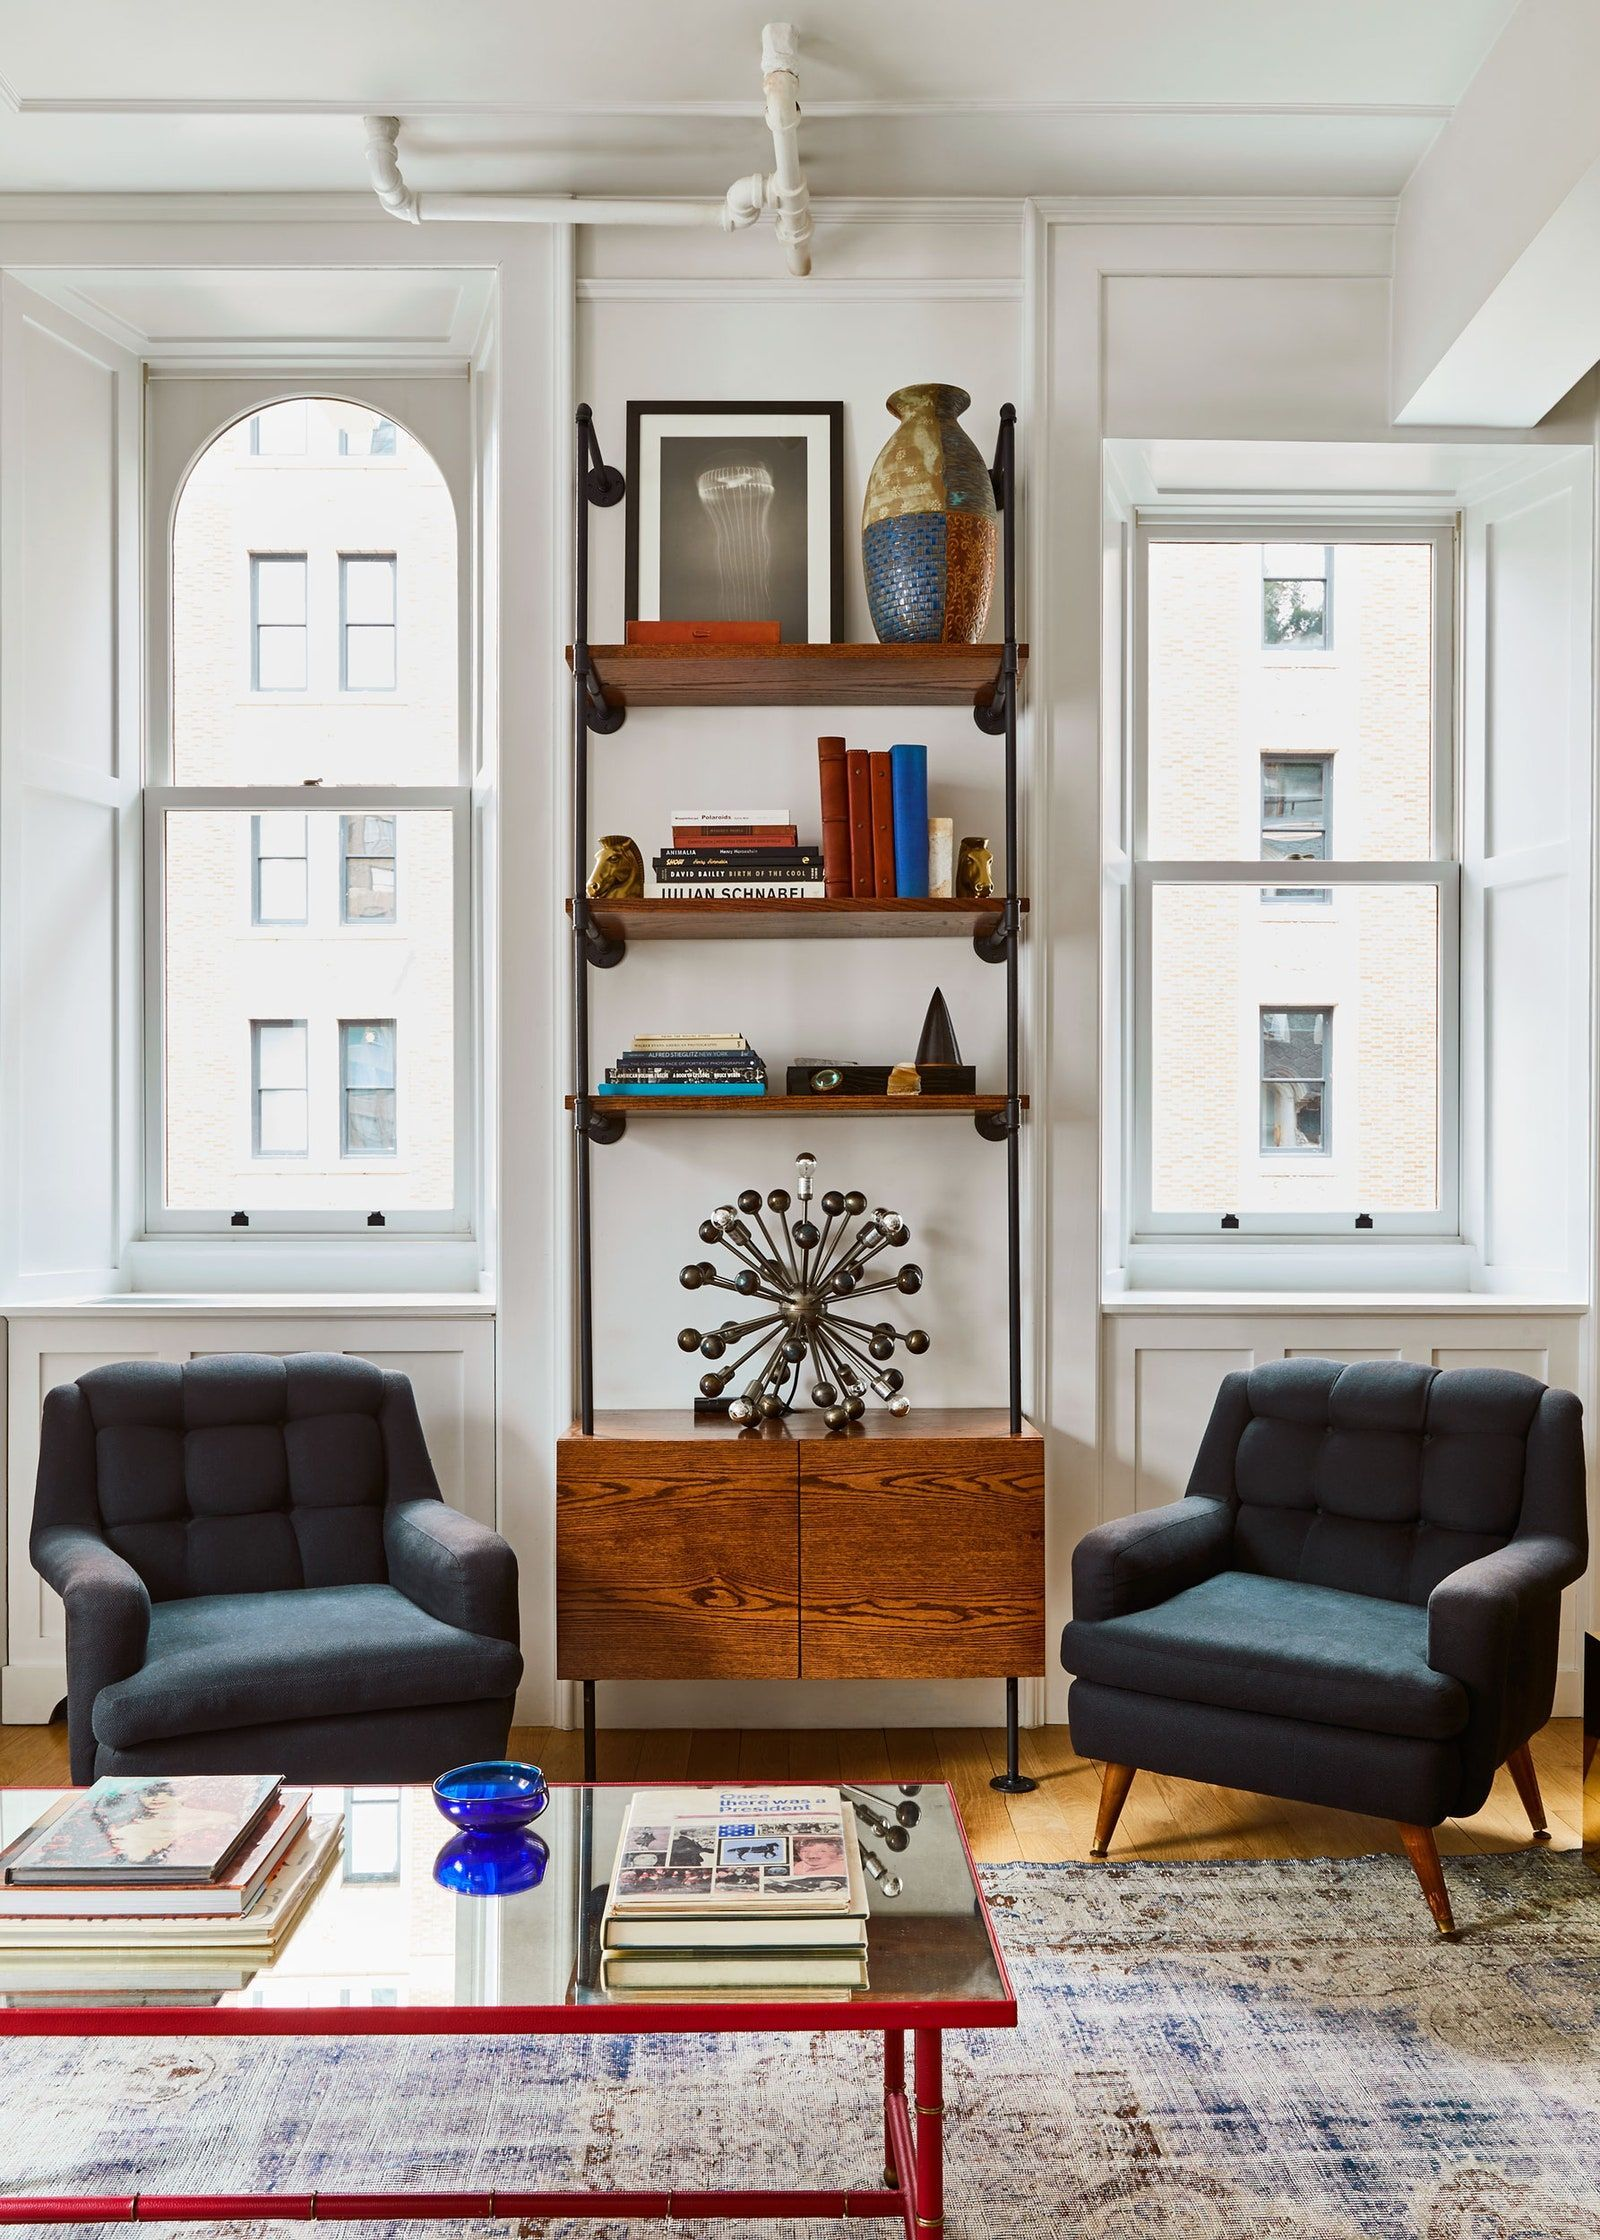 New York Apartments Architecture Contemporary Living Rooms Architectural Digest Houzz Remodels And Small Living Room Decor Living Room Designs Boho Living Room